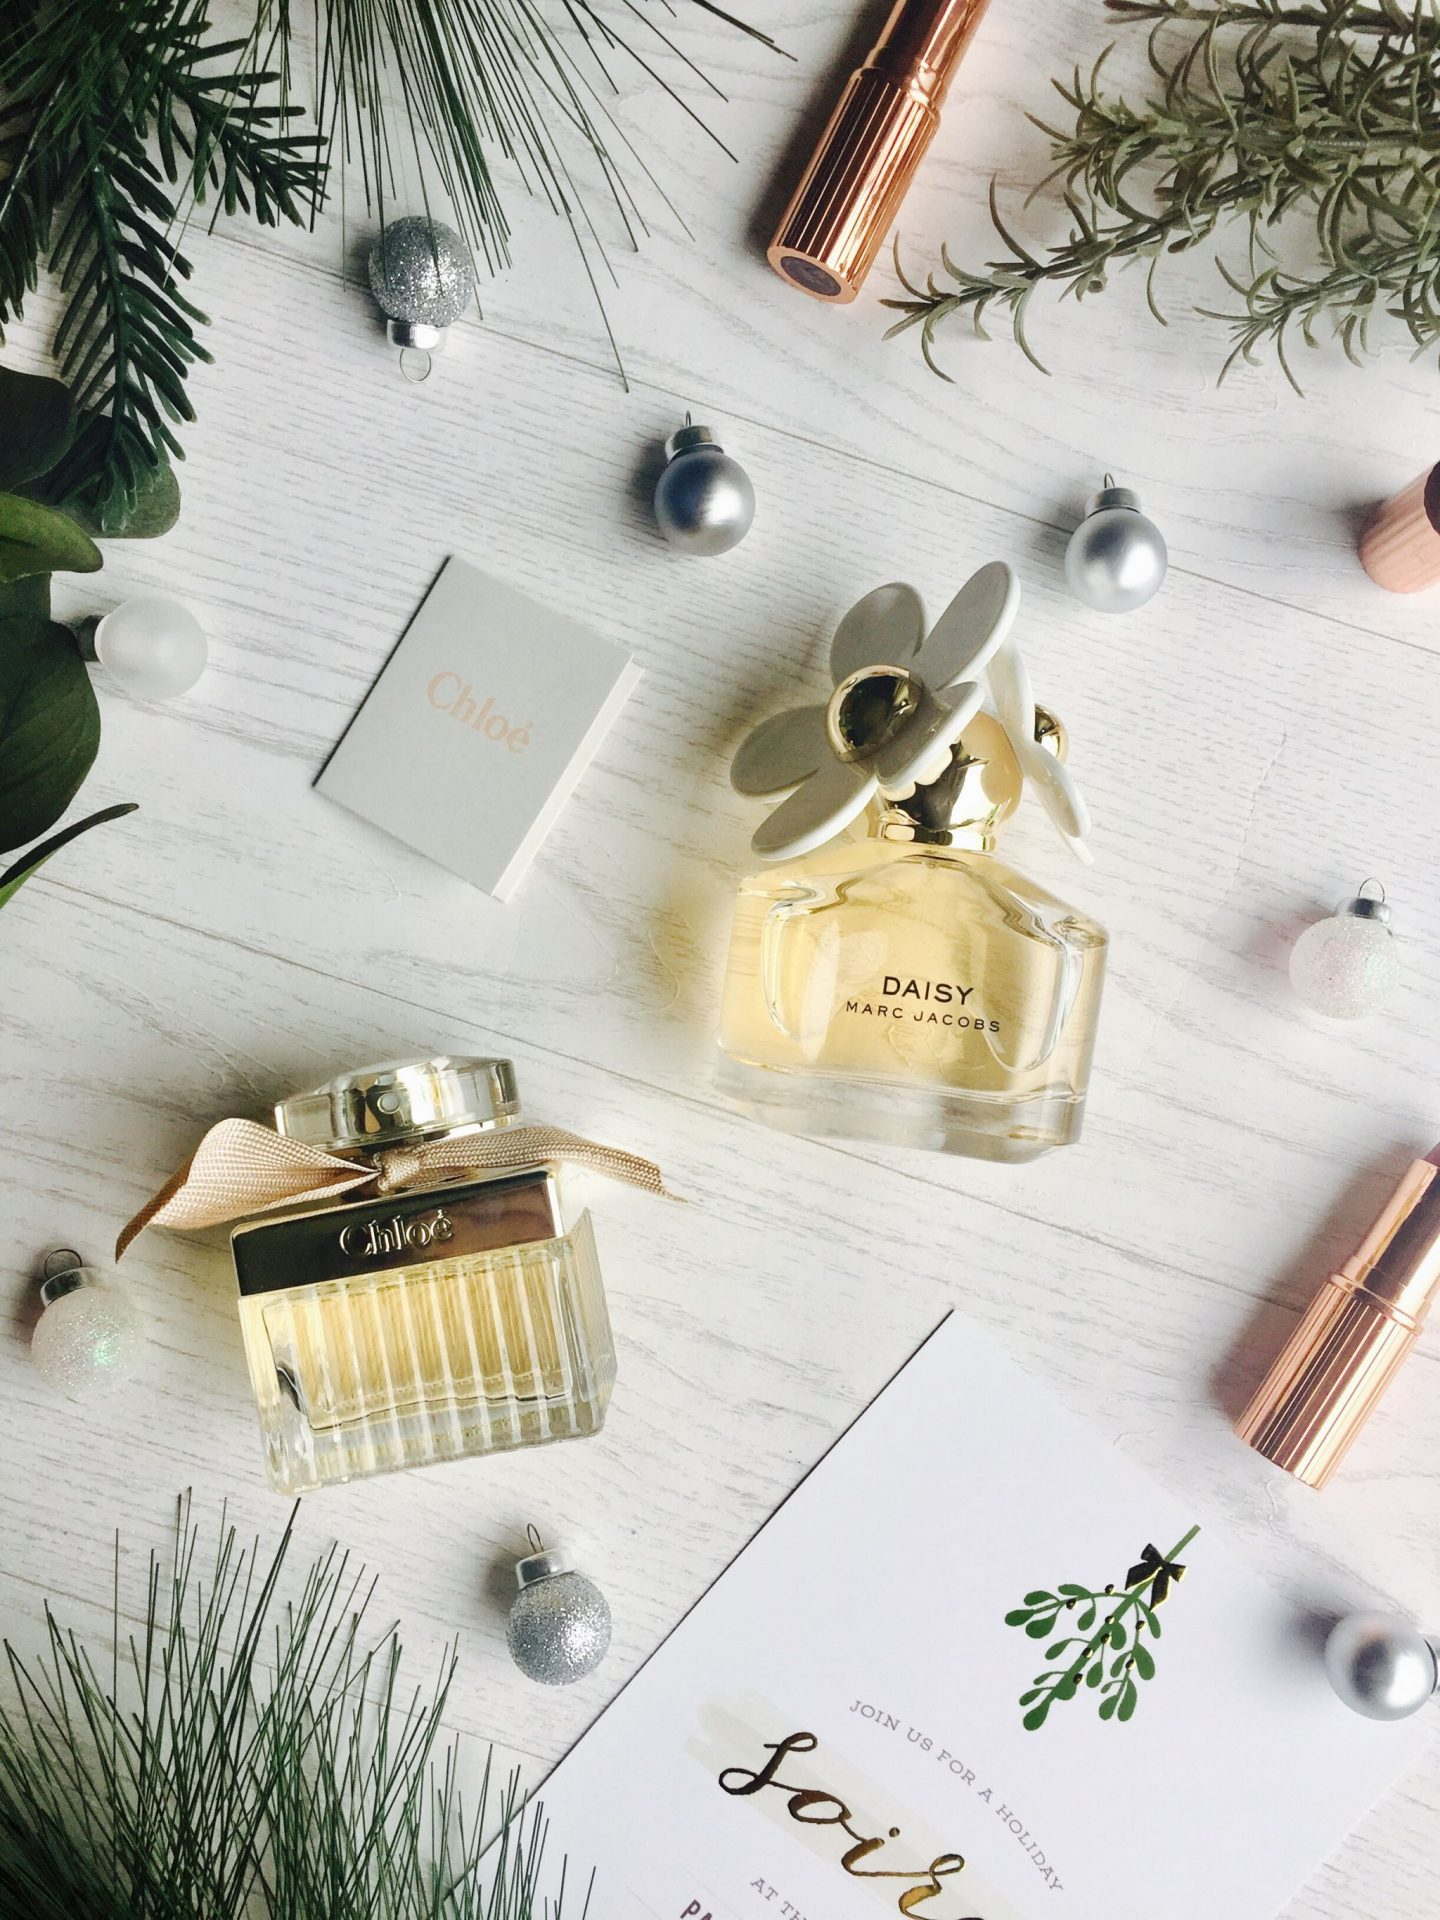 Christmas Gifting Week Fragrance Direct Marc Jacobs Chloe Daisy present ideas